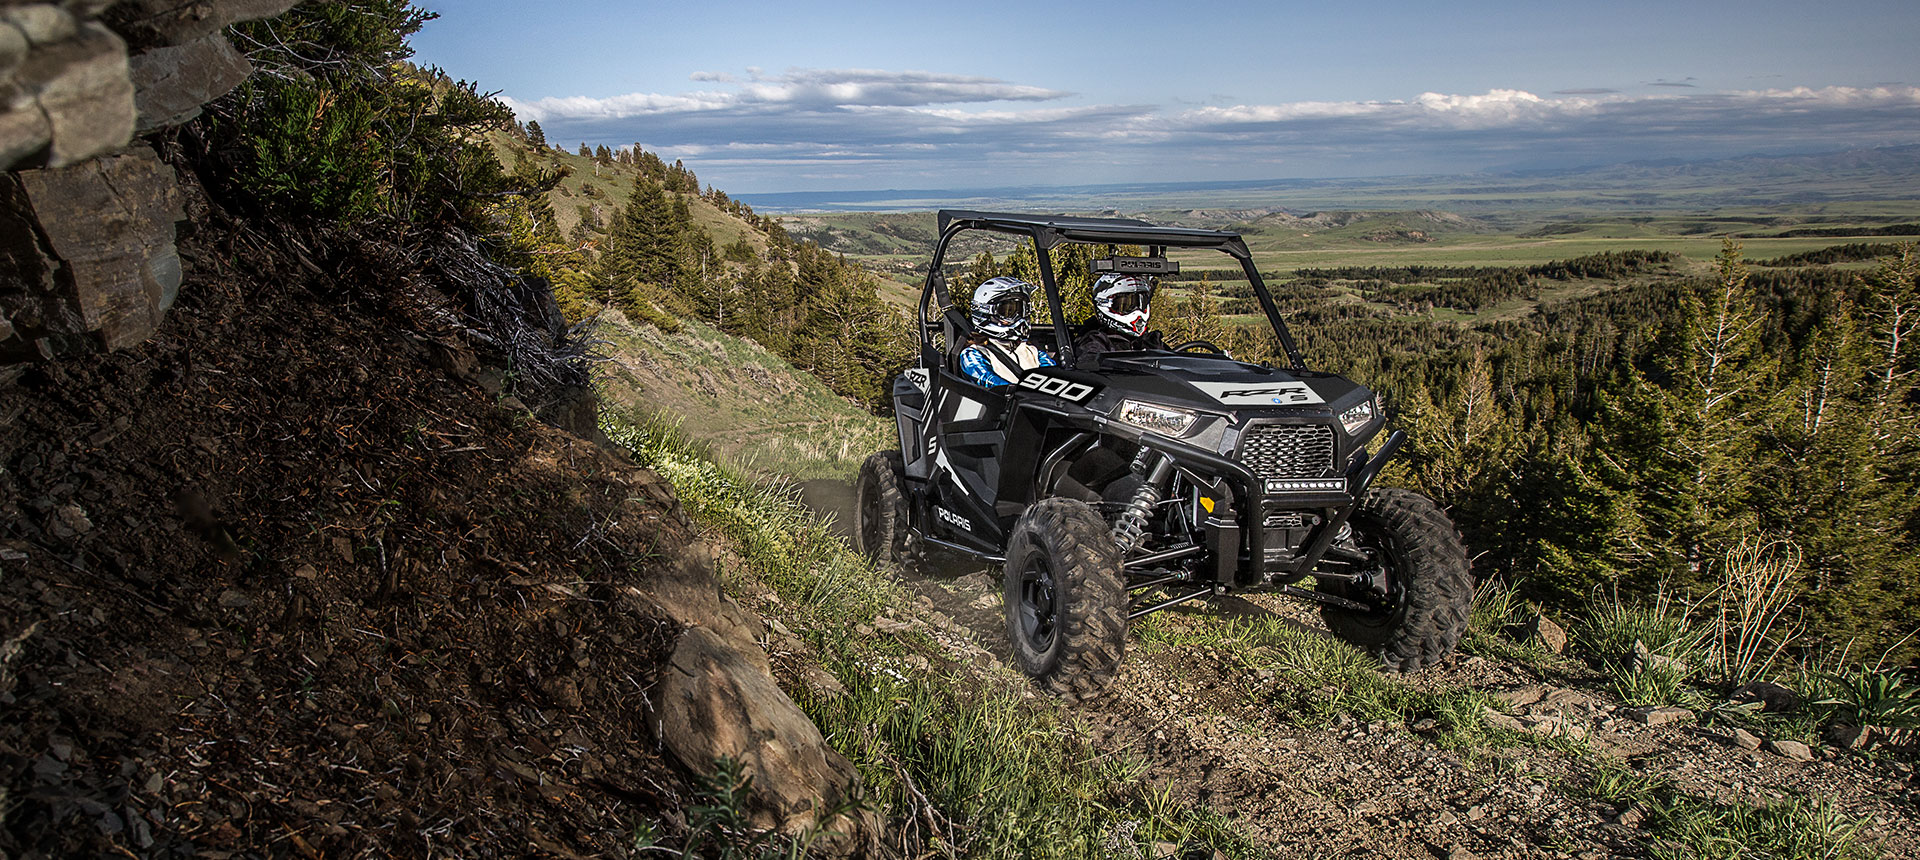 2019 Polaris RZR S 900 EPS in Sturgeon Bay, Wisconsin - Photo 5